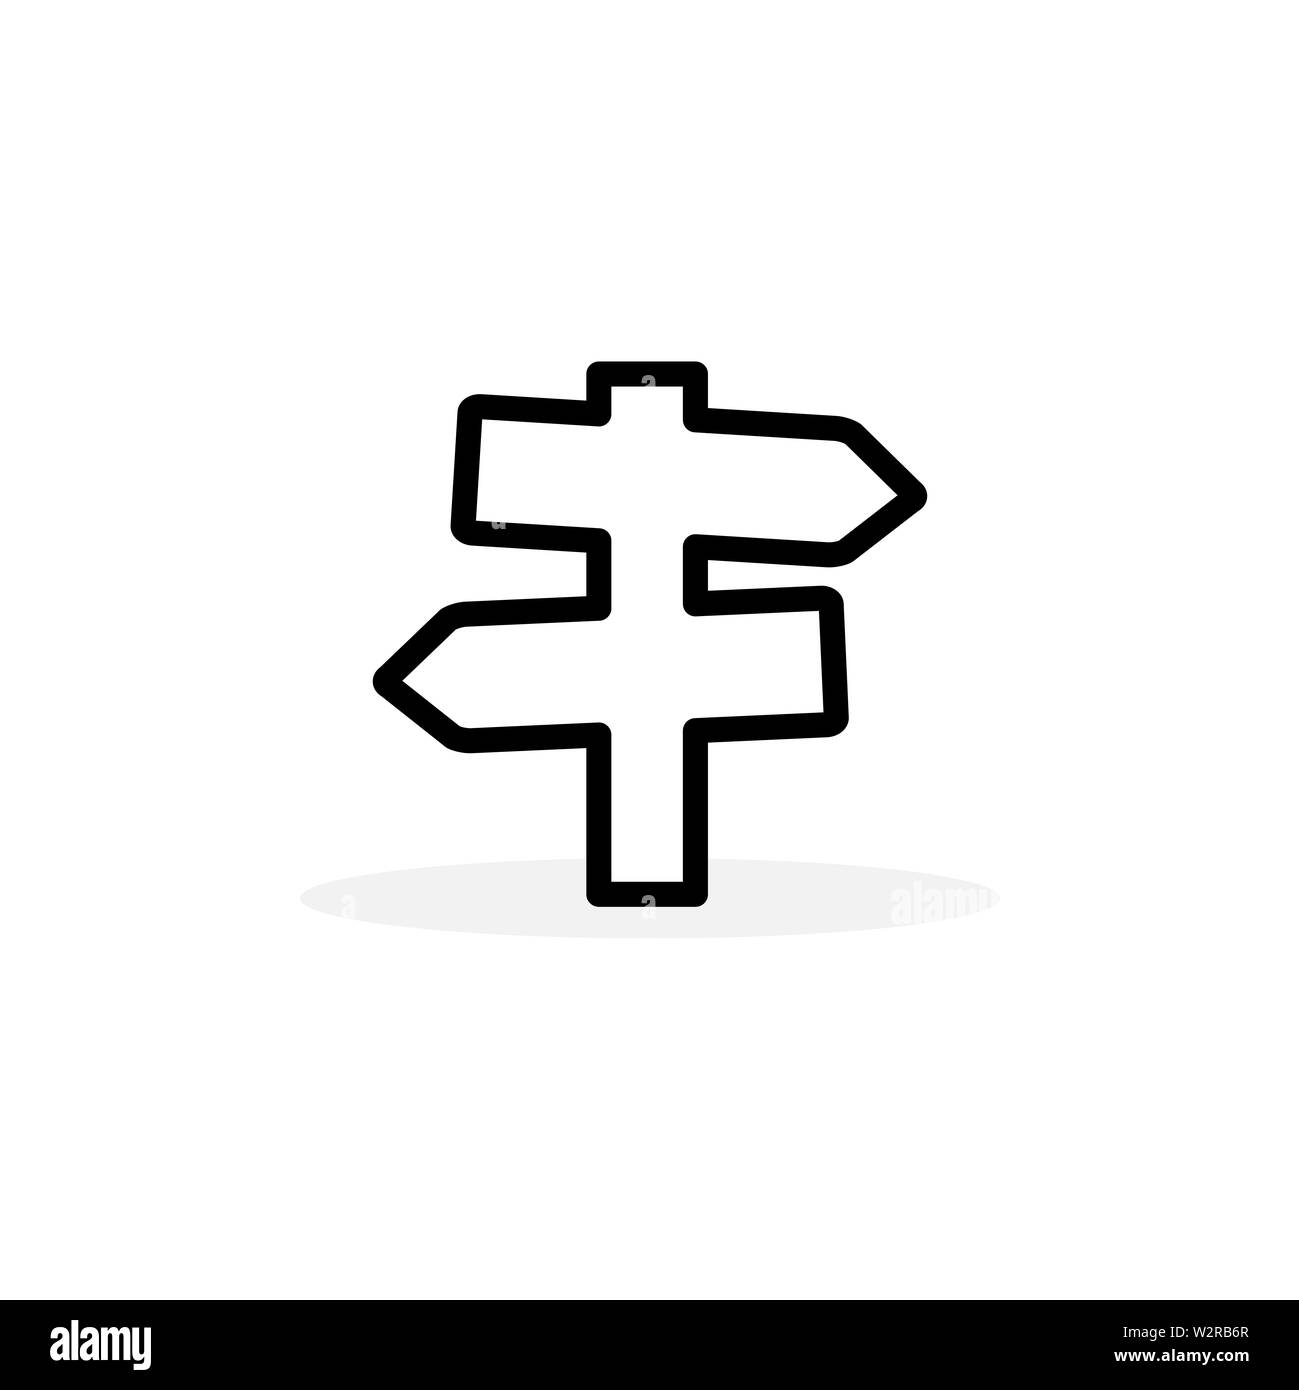 Signpost Line Icon In Flat Style Vector For Apps, UI, Websites. Black Icon Vector Illustration. - Stock Image